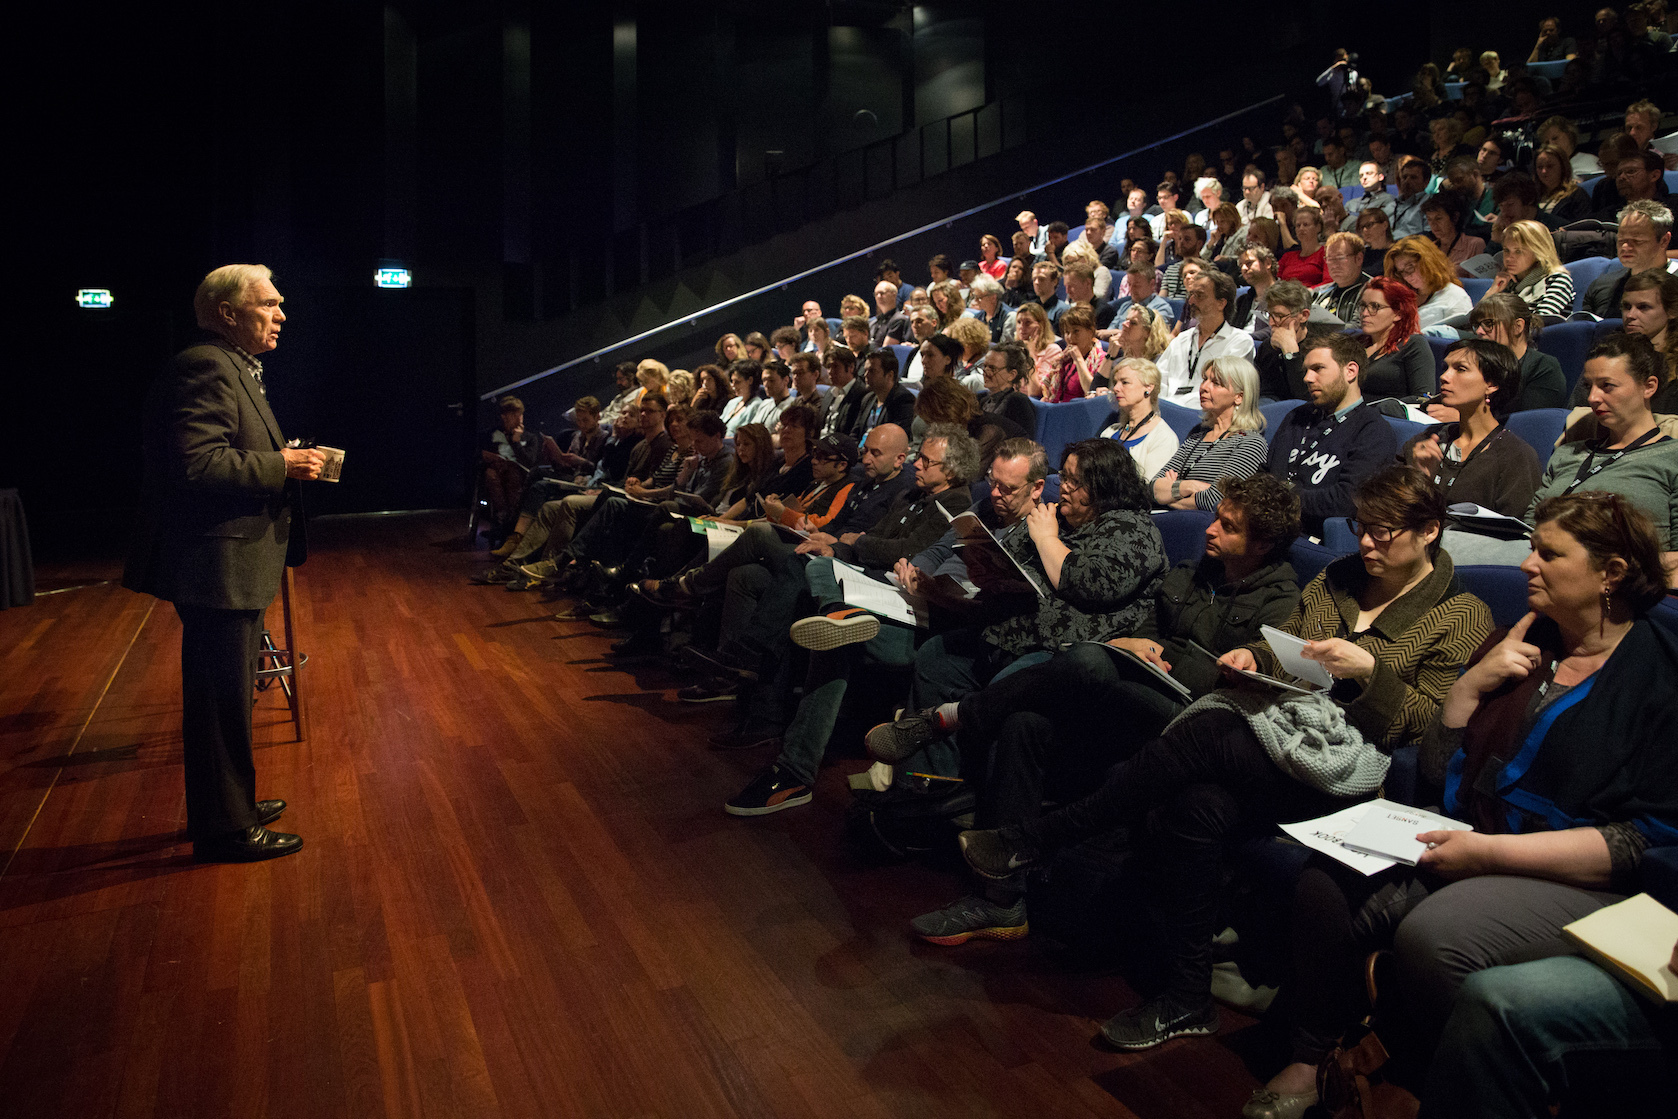 Robert McKee Lecturing in Amsterdam